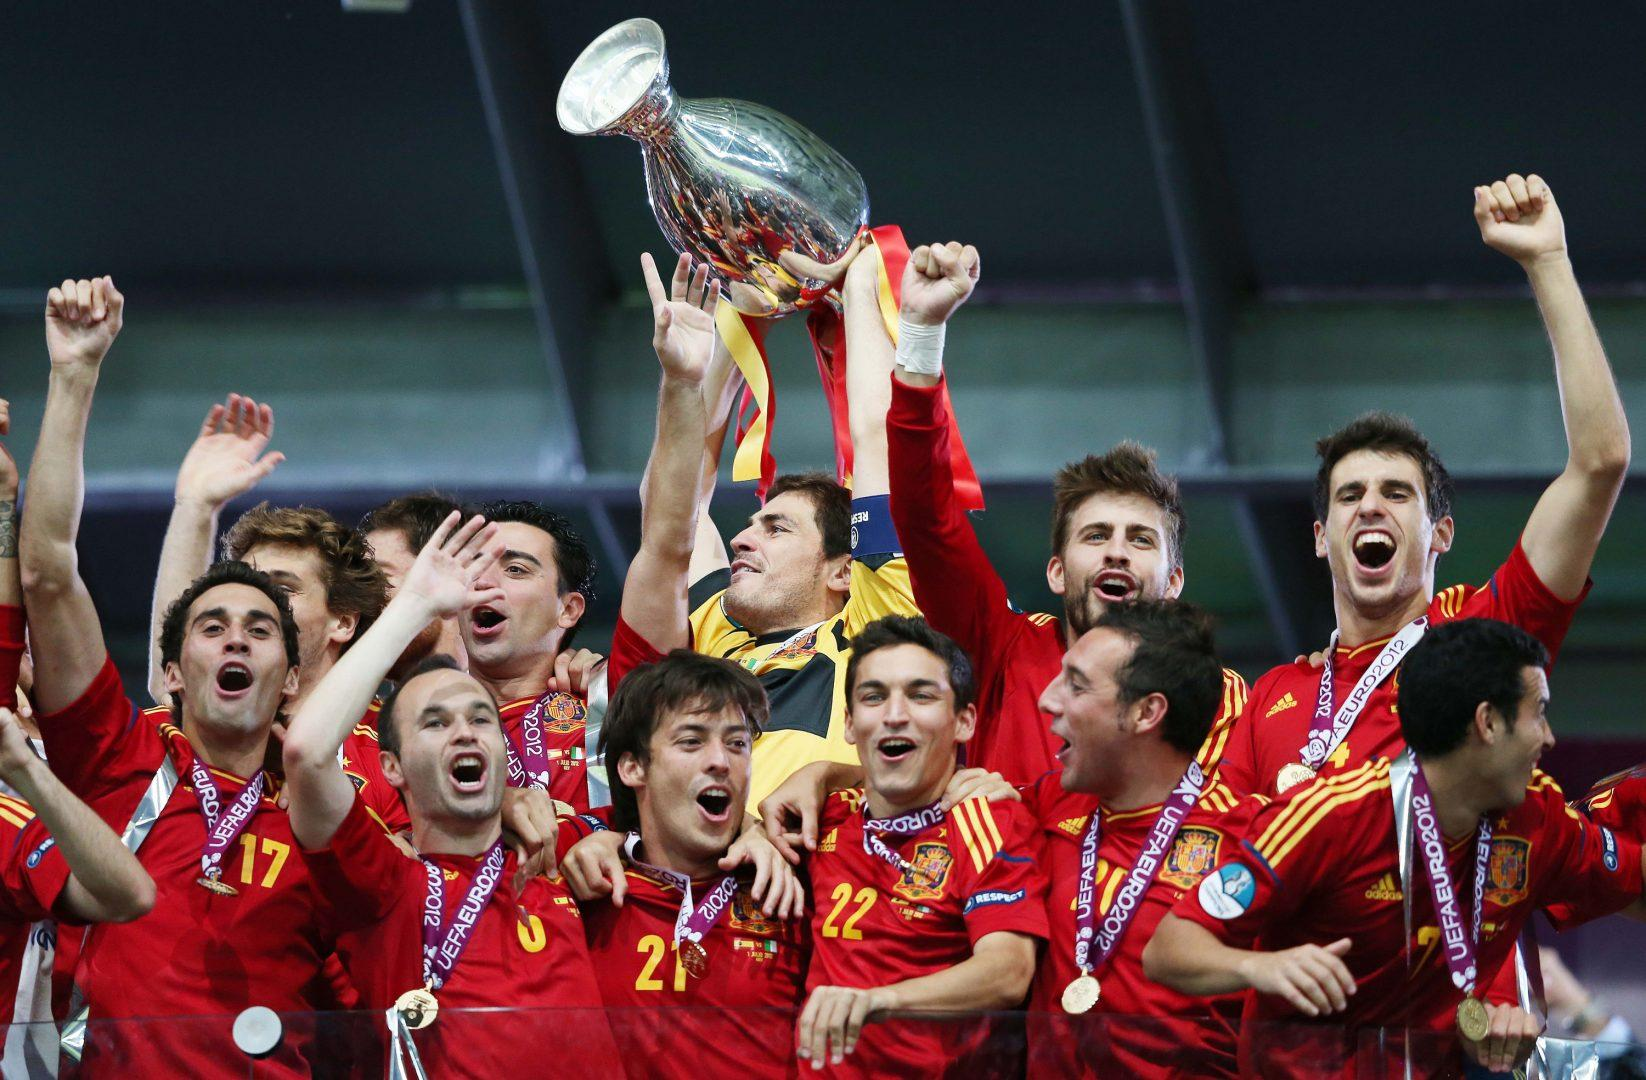 Spain's Quest for History in the World Cup